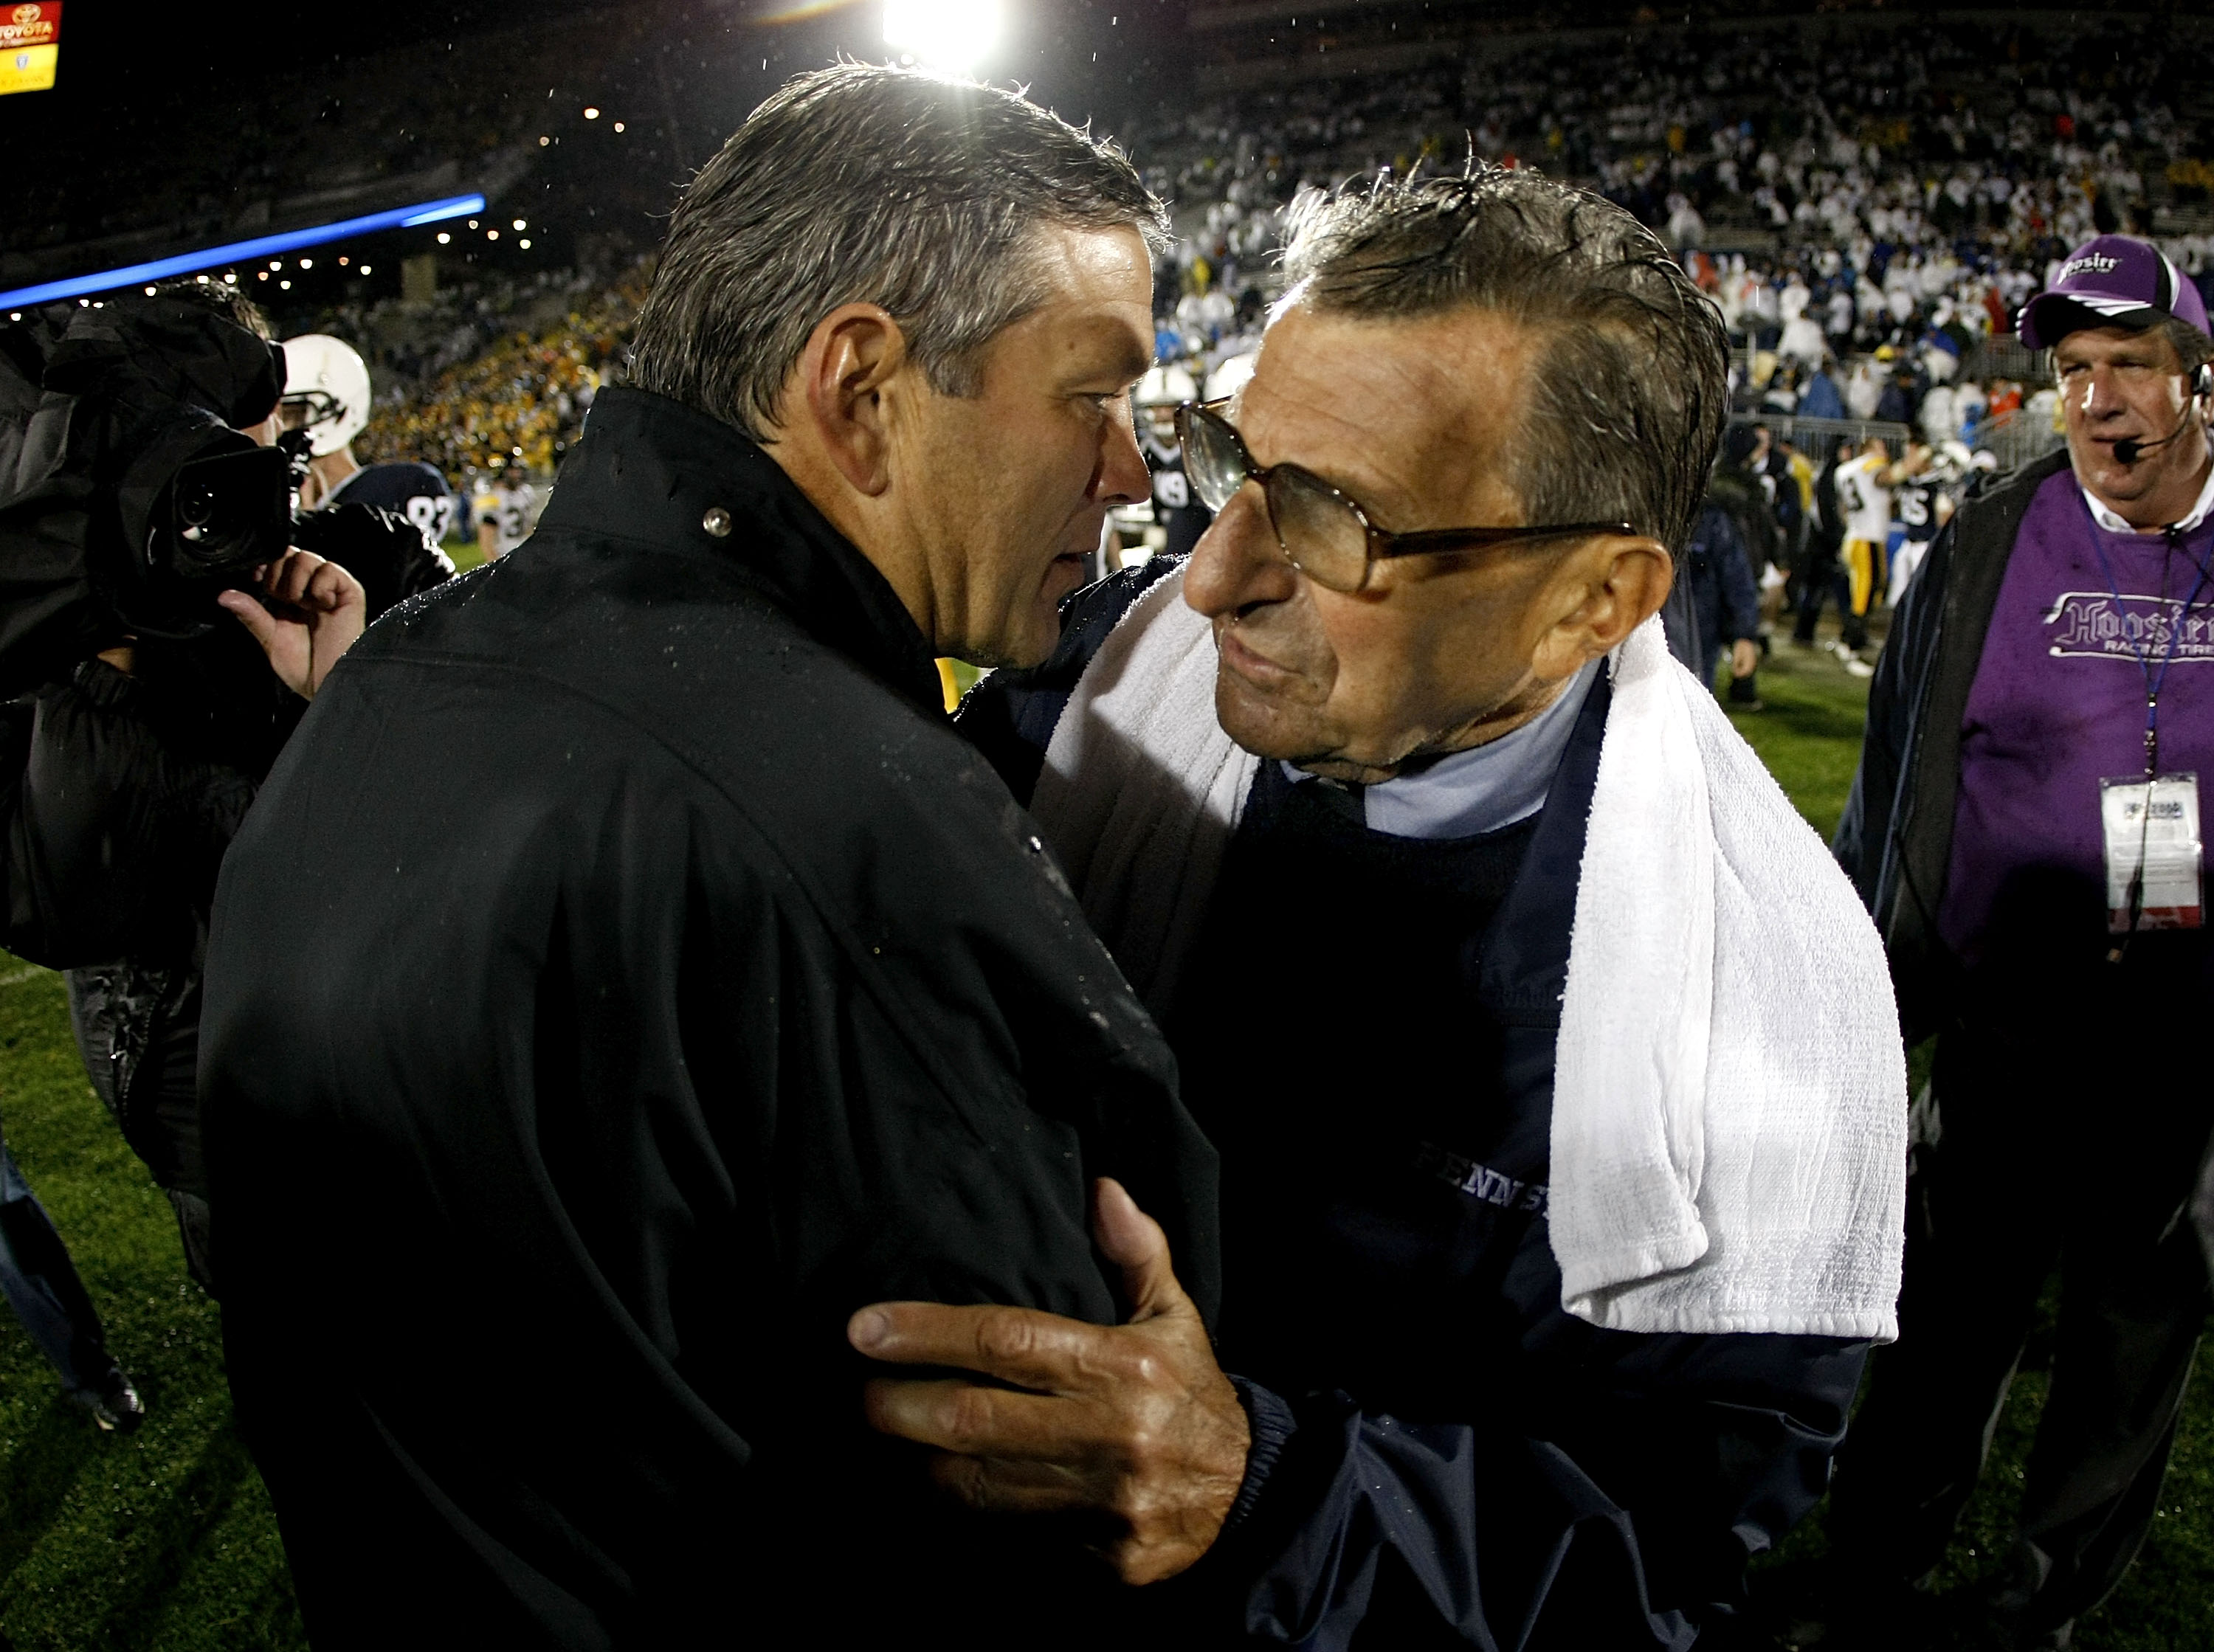 STATE COLLEGE, PA - SEPTEMBER 26:  Head coach Kirk Ferentz of the Iowa Hawkeyes shakes hands with head coach Joe Paterno of the Penn State Nittnay Lions after defeating them 21-10 on September 26, 2009 at Beaver Stadium in State College, Pennsylvania.  (P